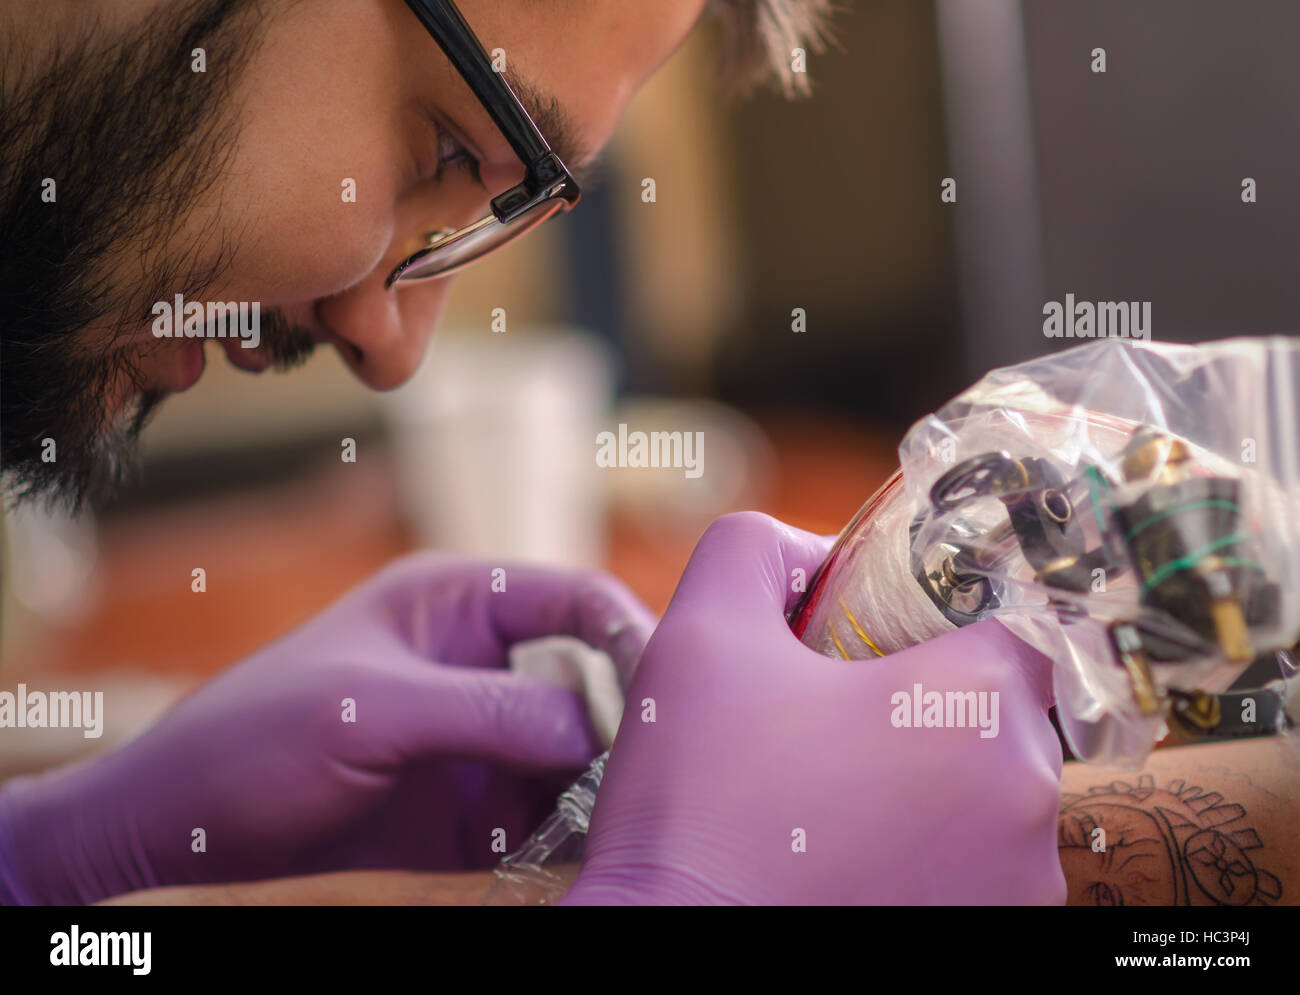 Close up of hand and face tattoo master who holds in his hand Tattoo machine. Soft focus. - Stock Image